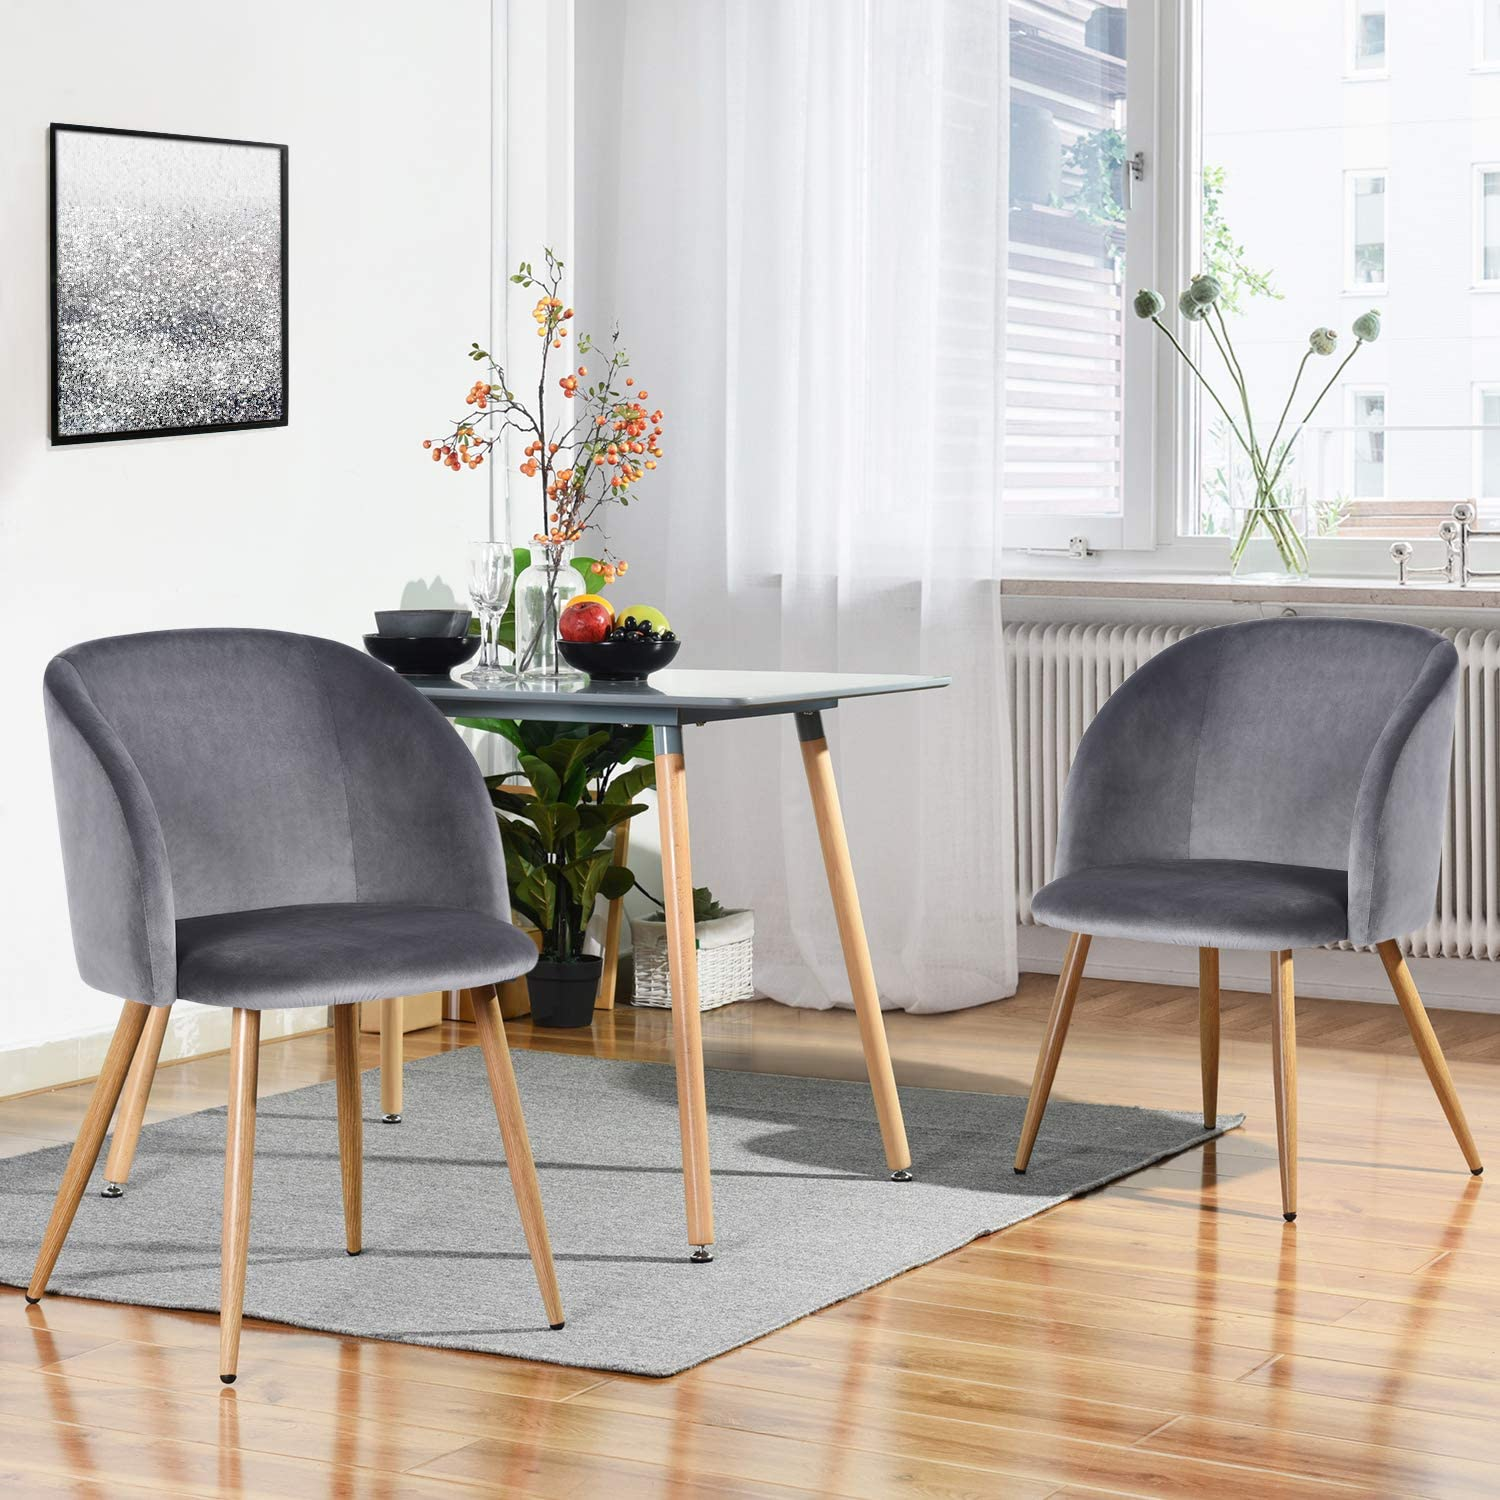 HomyCasa Dining Chair Accent Chair Set of 2 for Living Room, Side Chair Guest Chair Velvet Fabric Ergonomic Padded Seat Armrest with Metal Legs Scandinavian Style Indoor Coffee Shop Grey